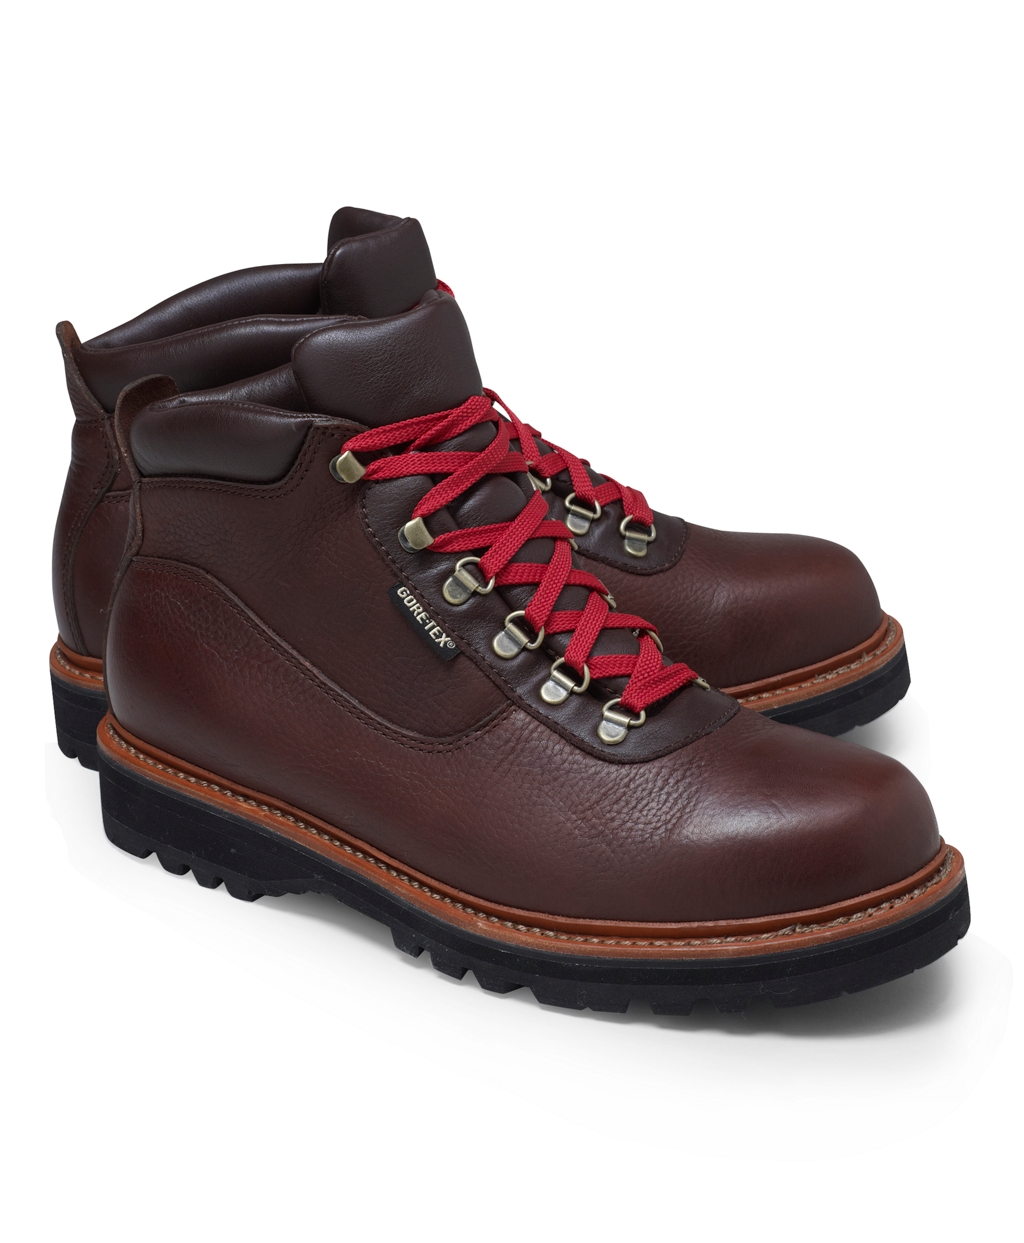 brothers hiking boots in brown for brown